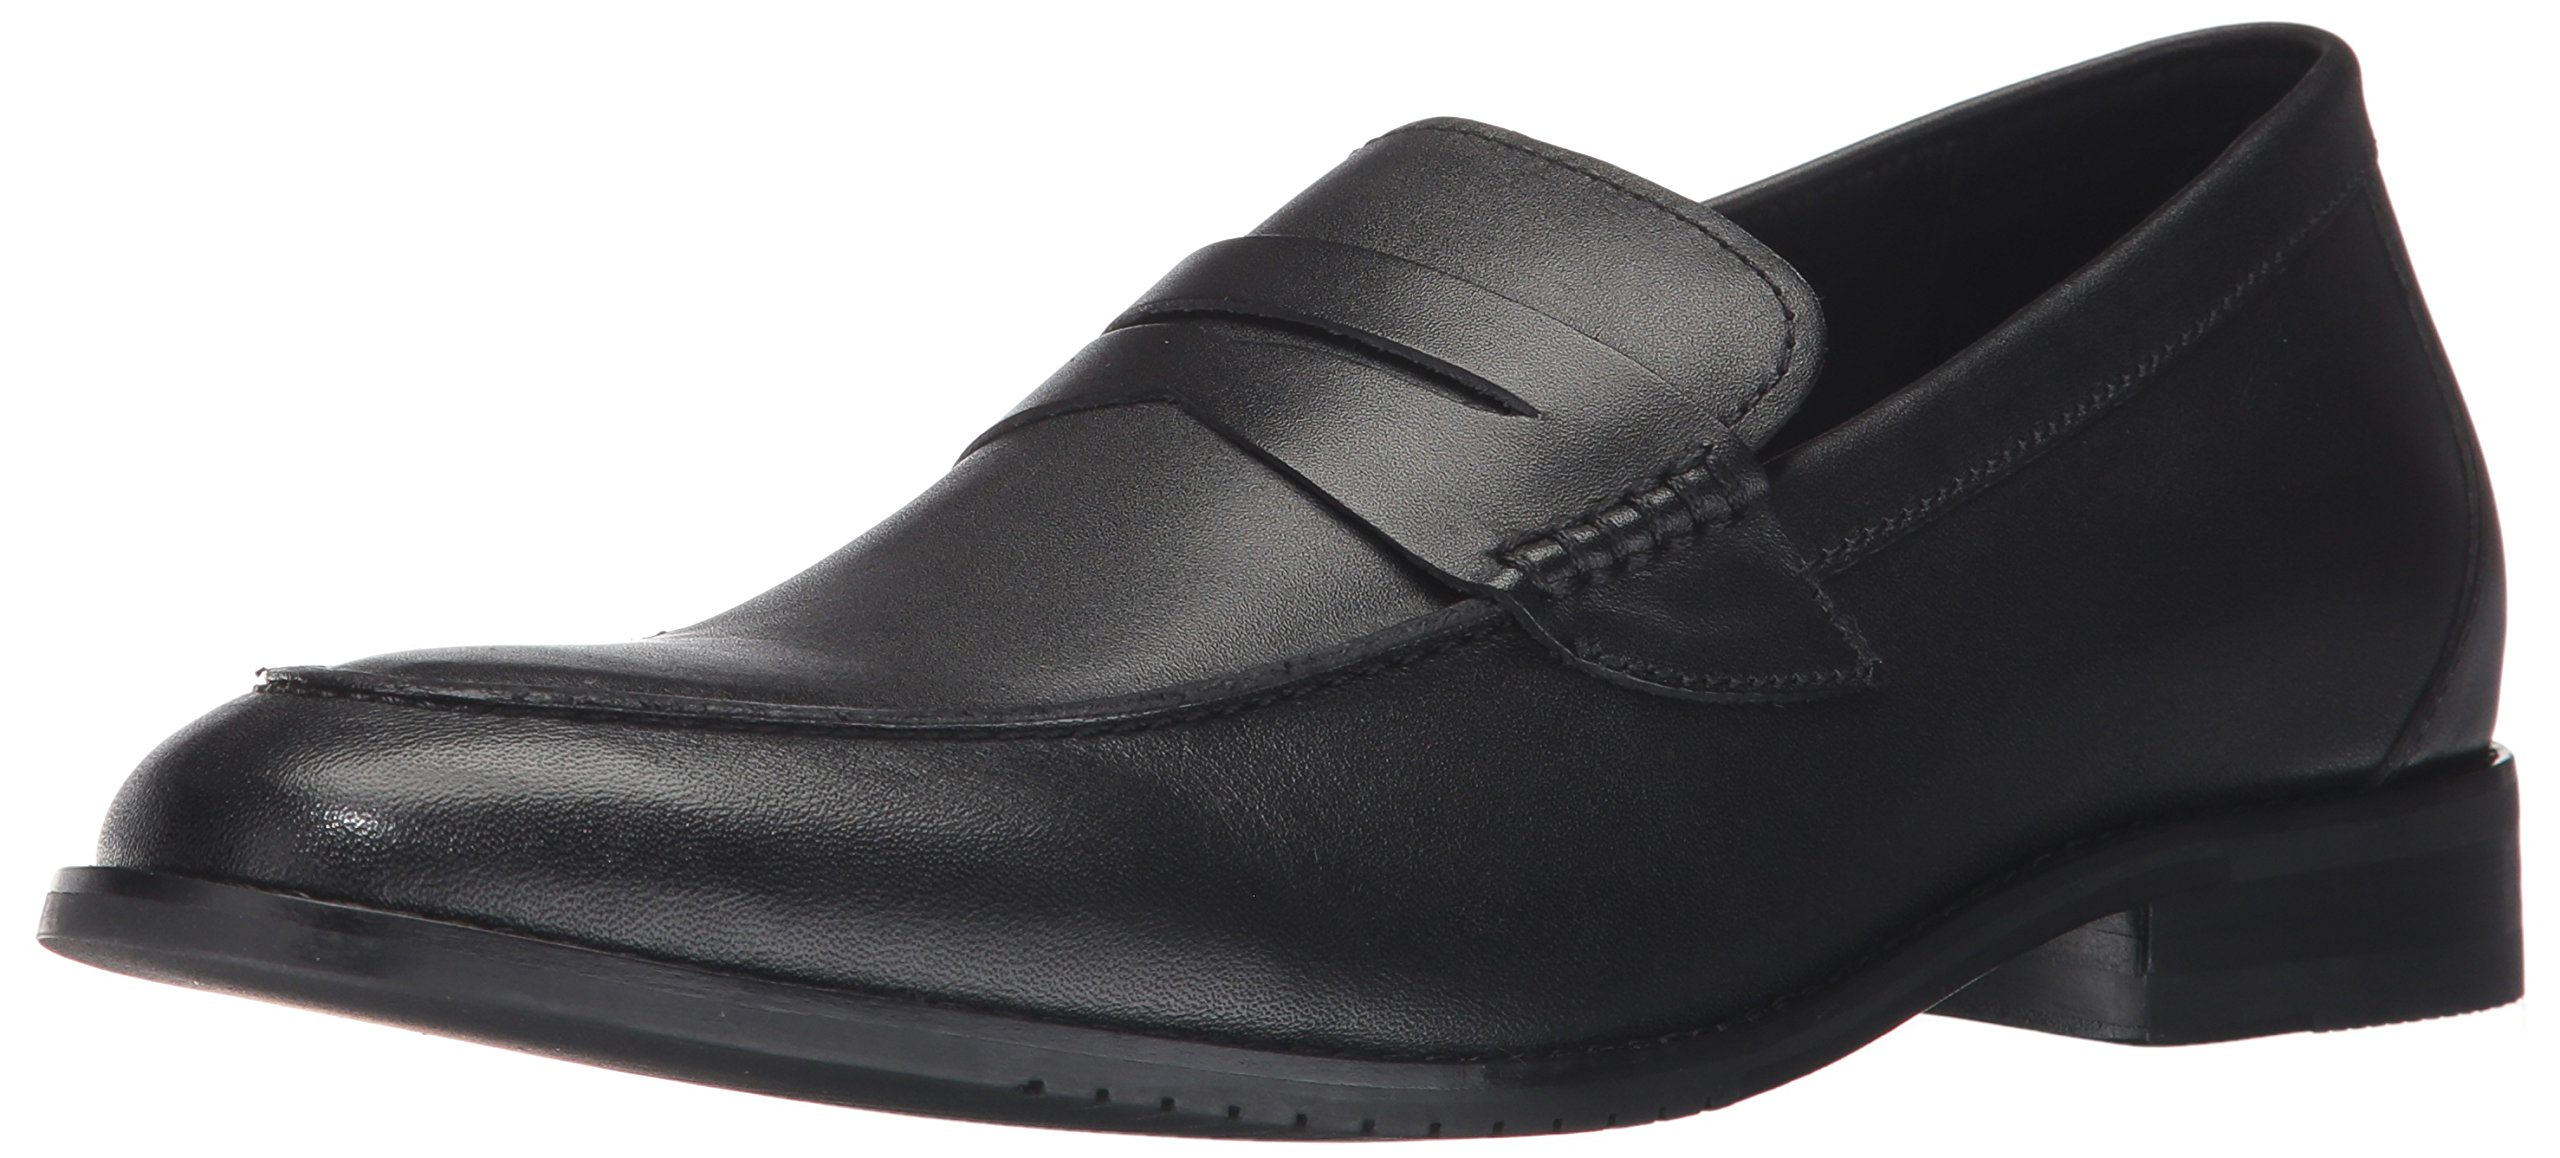 206 Collective Men's Winton Penny Loafer, Black, 10.5 D US